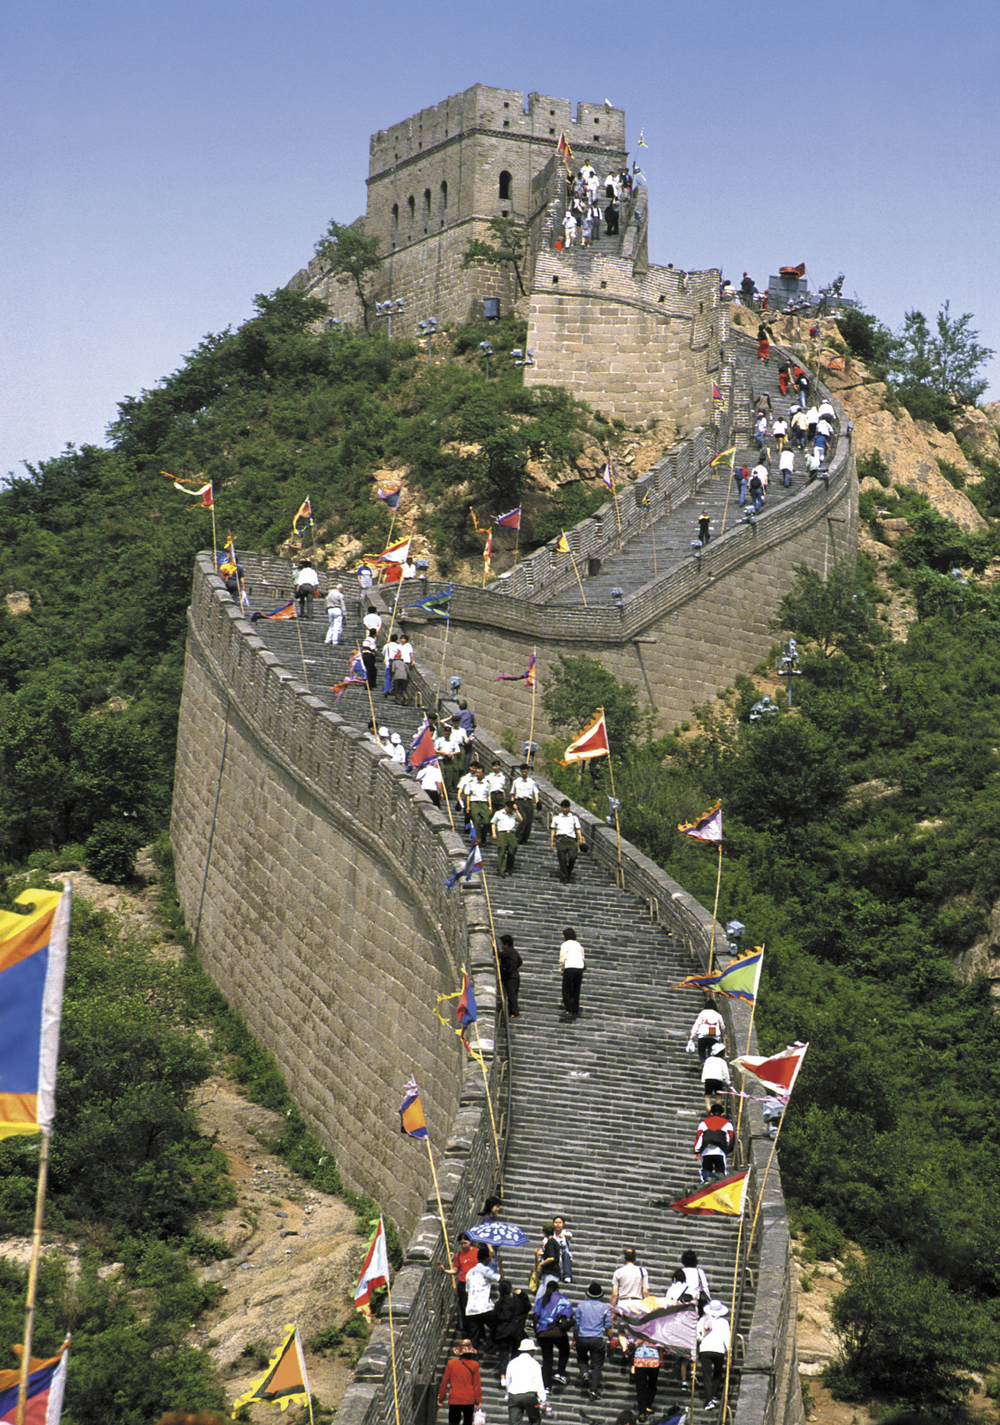 The Great Wall: A testament of the past, present, and future.